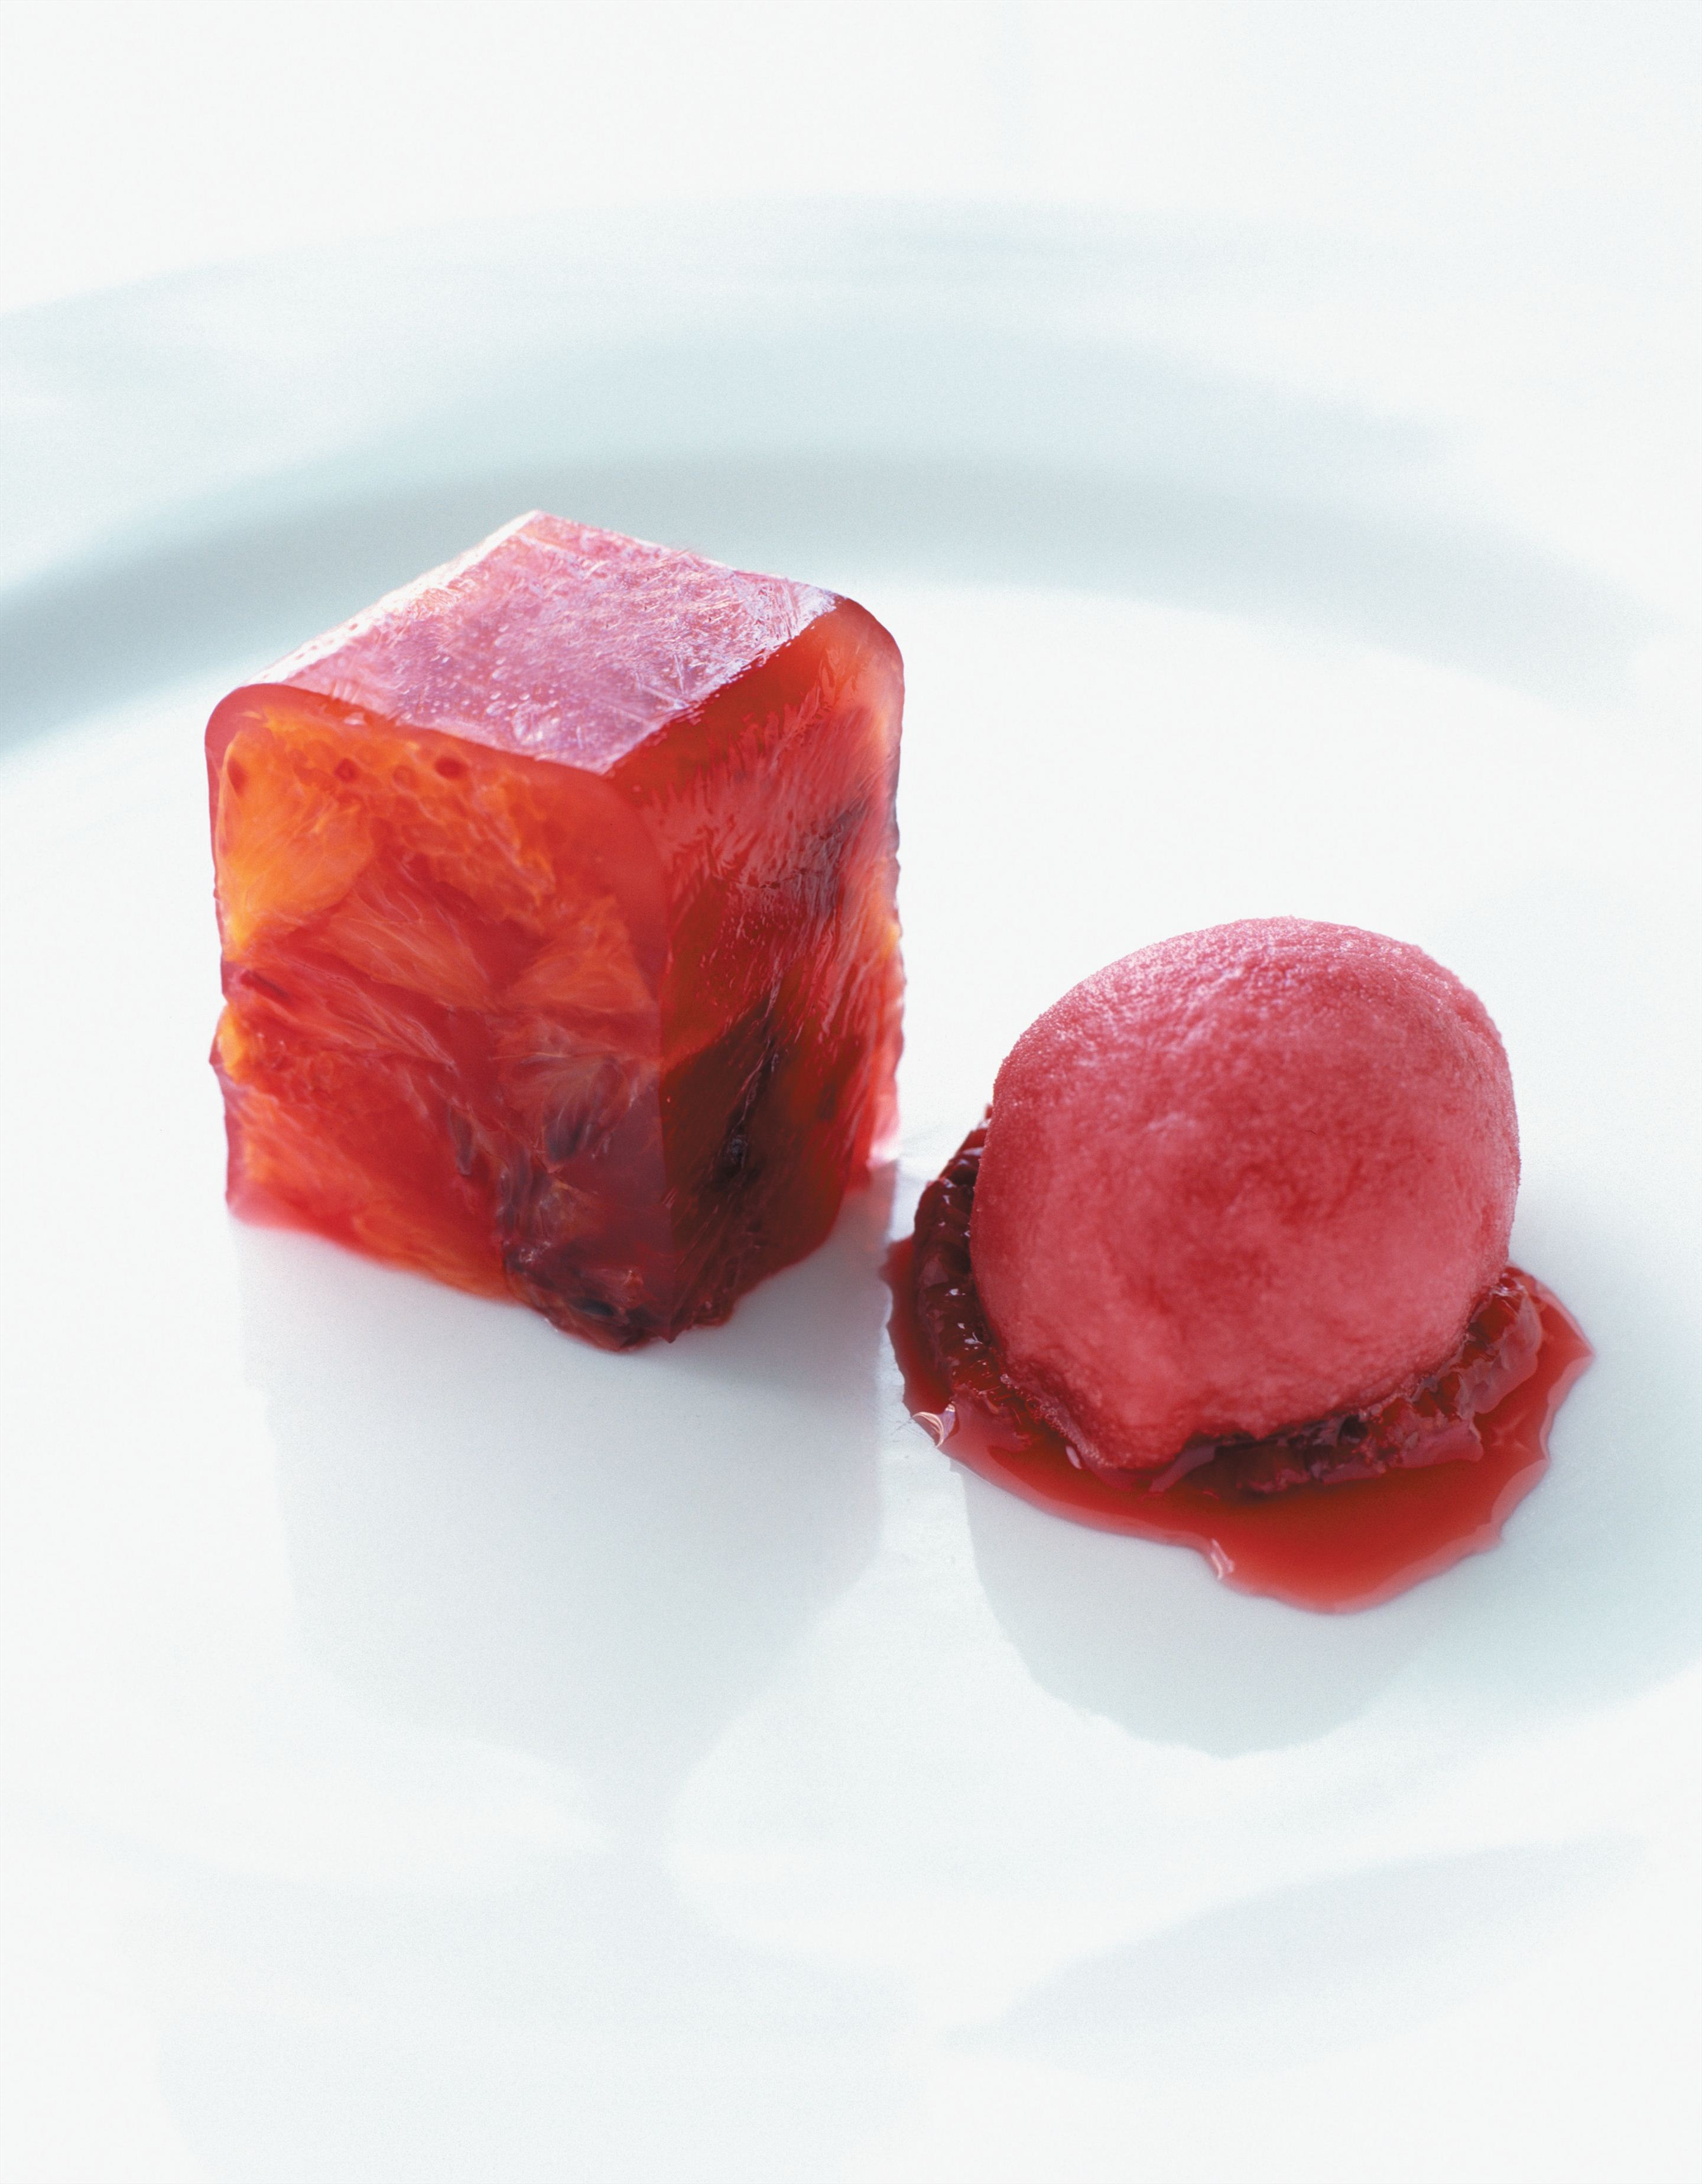 Terrine and sorbet of blood orange